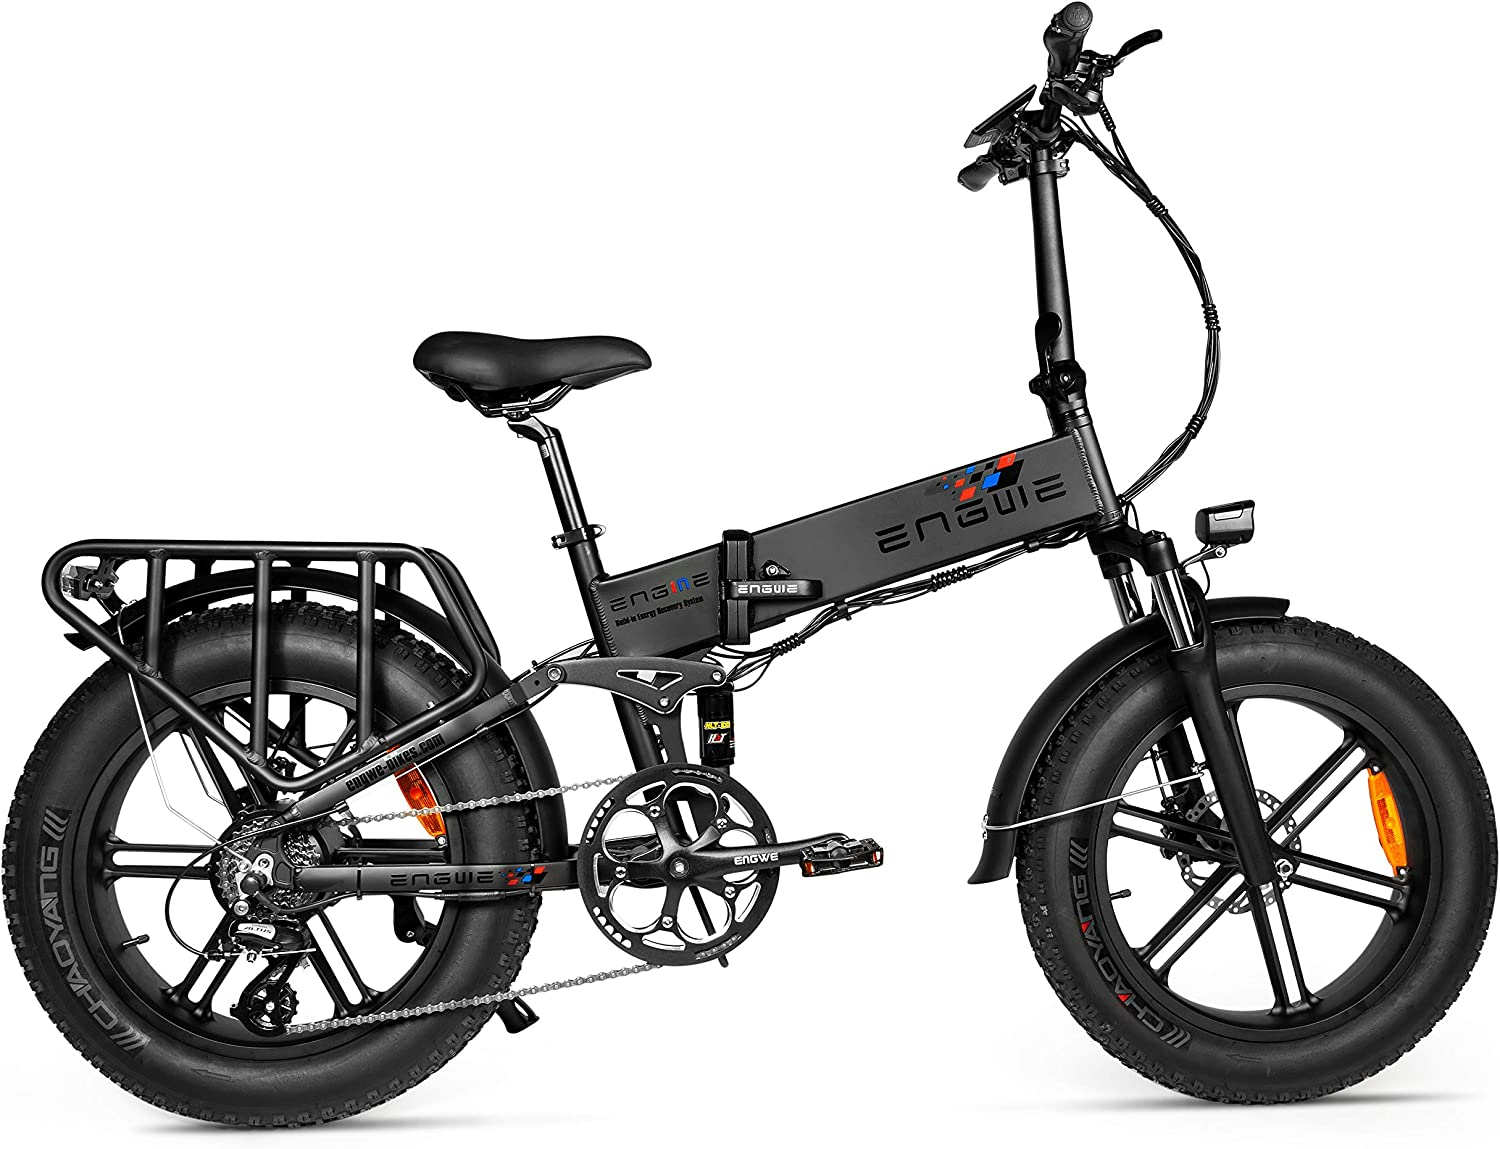 ENGWE Upgrade 500W 20 inch Fat Tire Electric Bicycle Mountain Beach Snow Bike for Adults, Aluminum Electric Scooter 8 Speed Gear E-Bike with Removable 48V12.8A Lithium Battery (ENGIE)